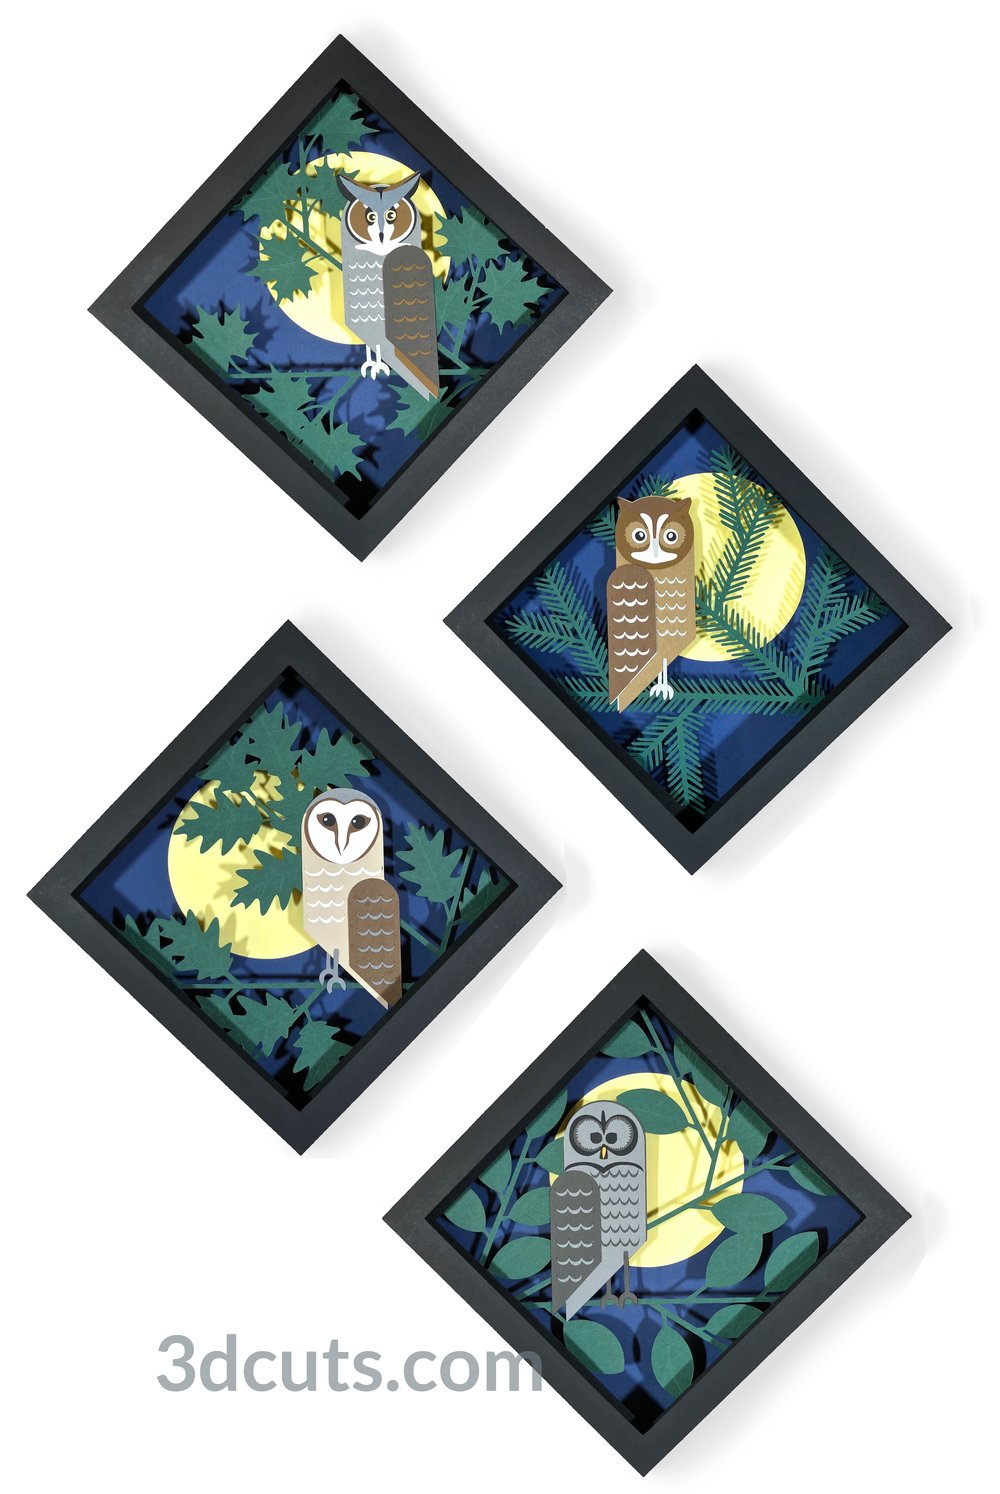 The Owl Shadow Box Series by 3DCuts.com, Marji Roy, 3D cutting files in .svg, .dxf, and .pdf formats for use with Silhouette, Cricut and other cutting machines.